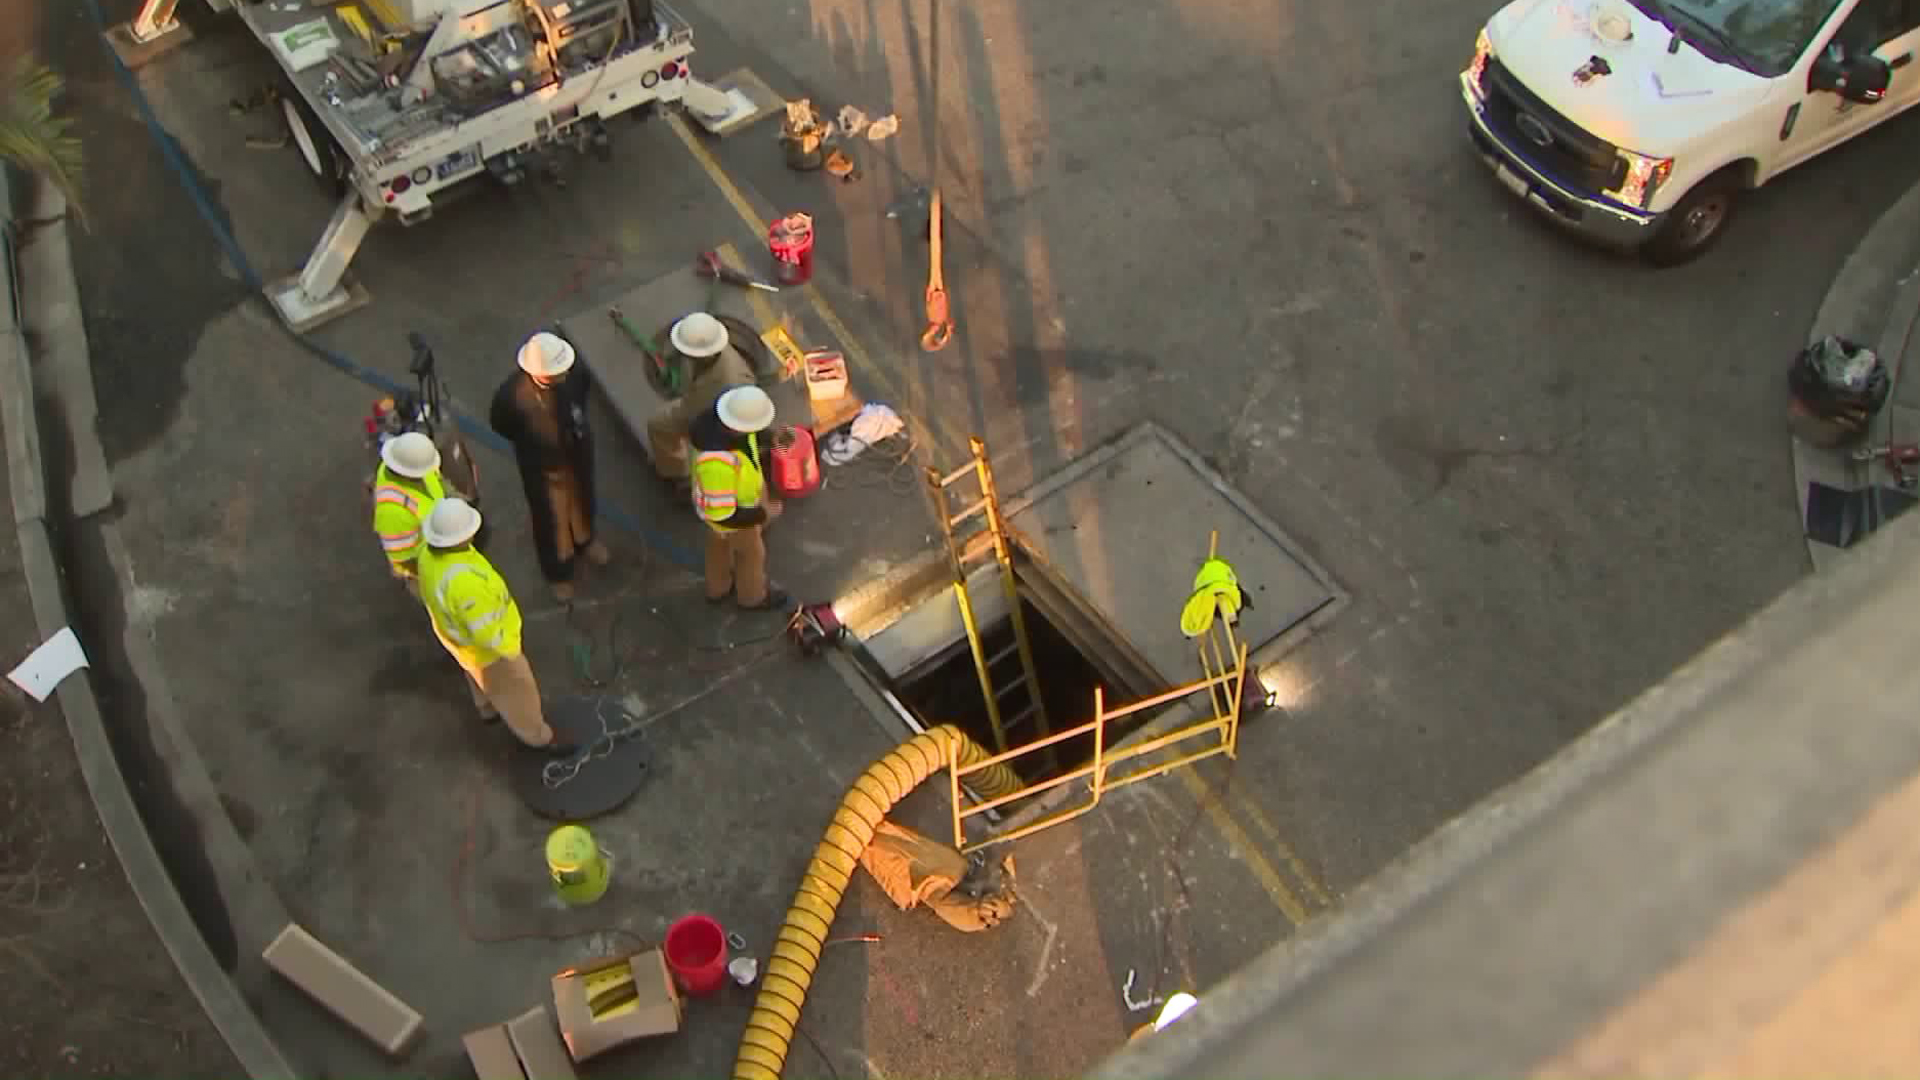 Officials investigate after an underground vault exploded in Long Beach on Nov. 20, 2018. (Credit: KTLA)